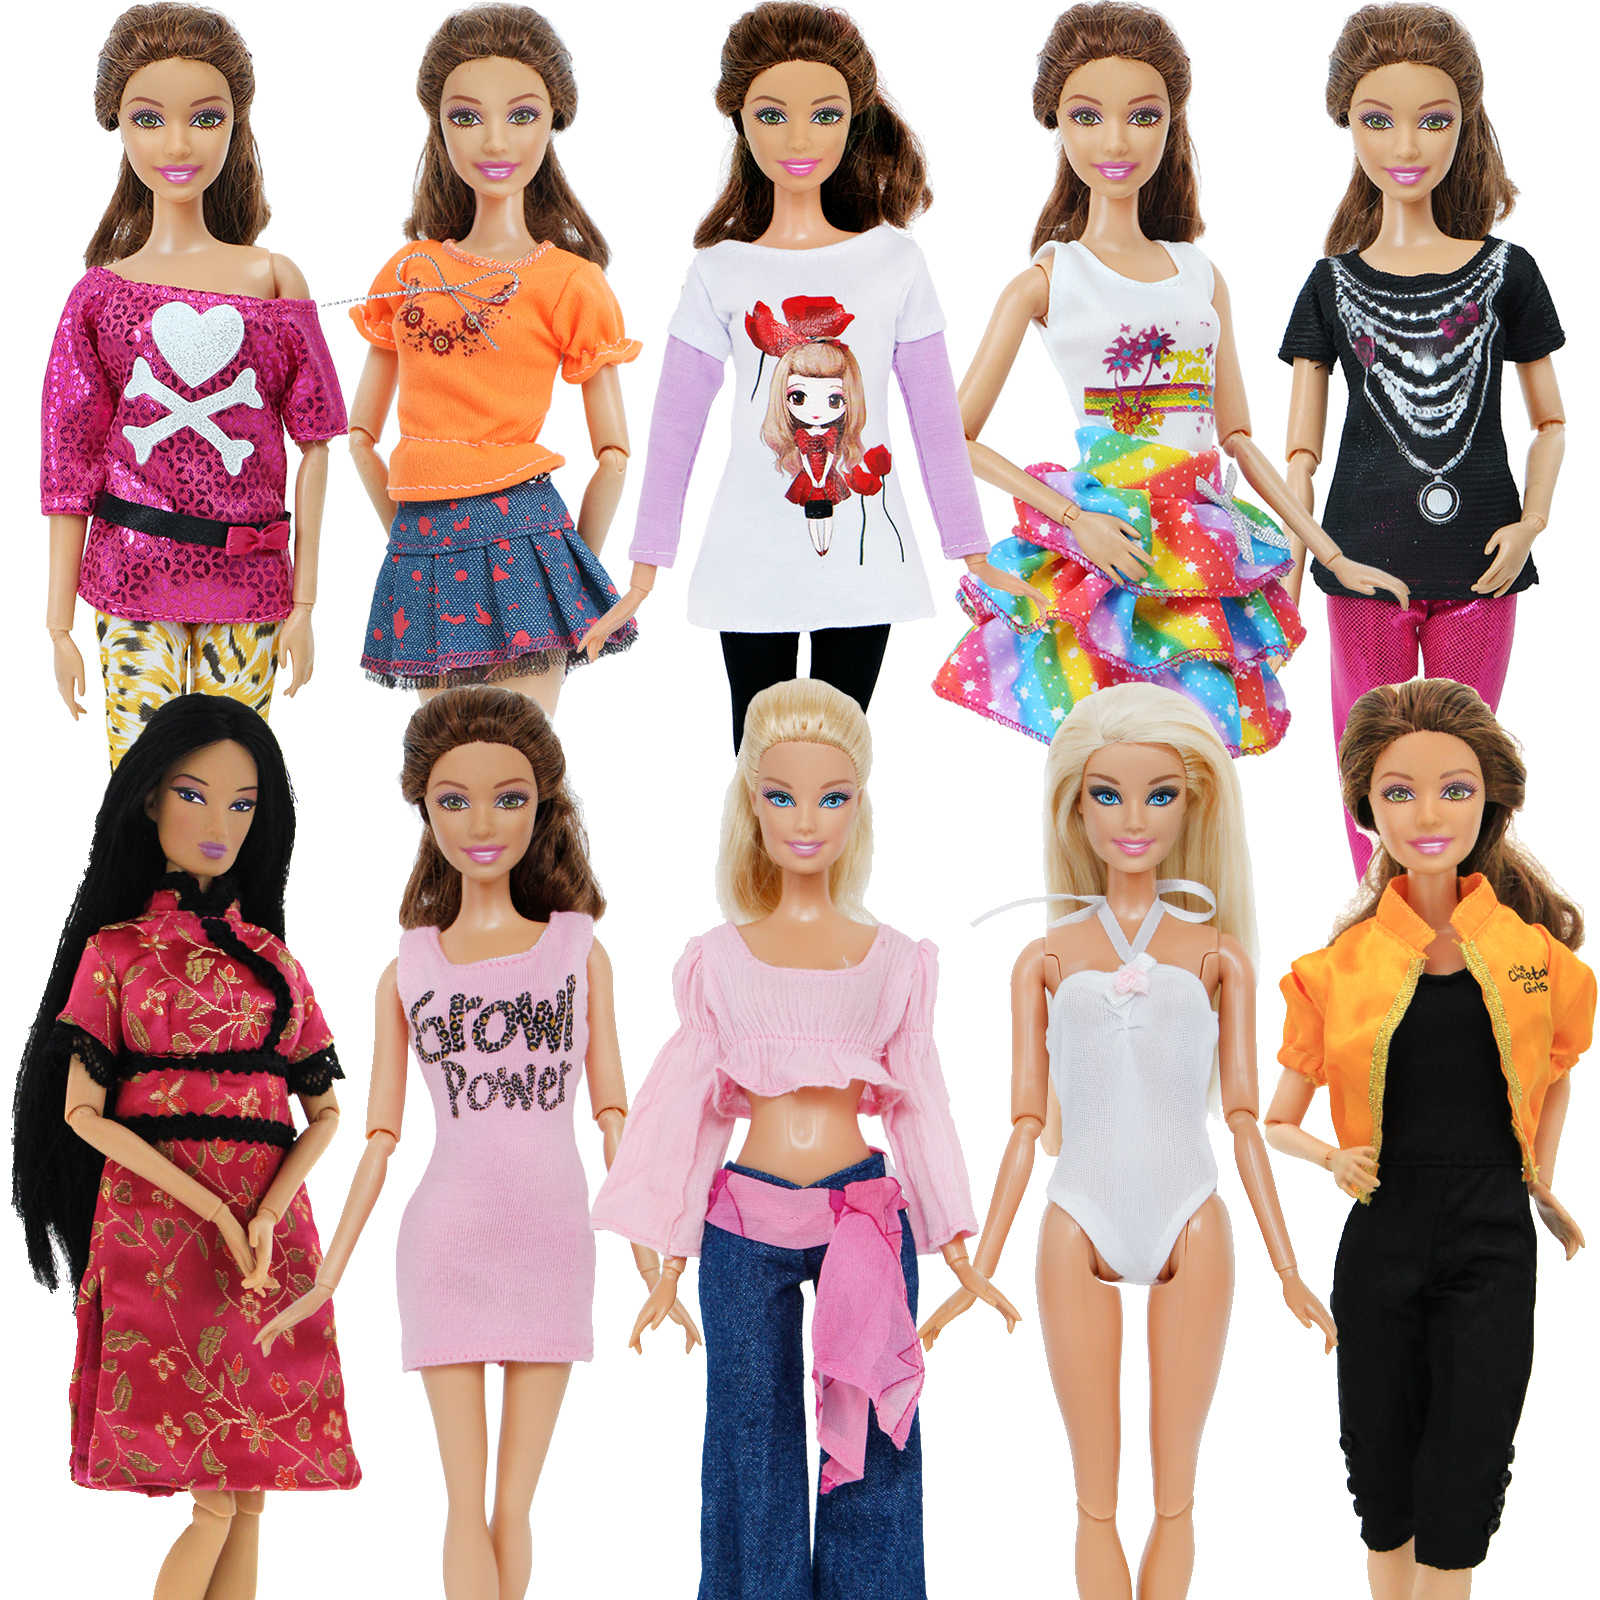 5 set Handmade Fashion Outfit Daily Casual Wear Blouse Shirt Vest Bottom Pants Skirt Clothes For Barbie Doll Accessories